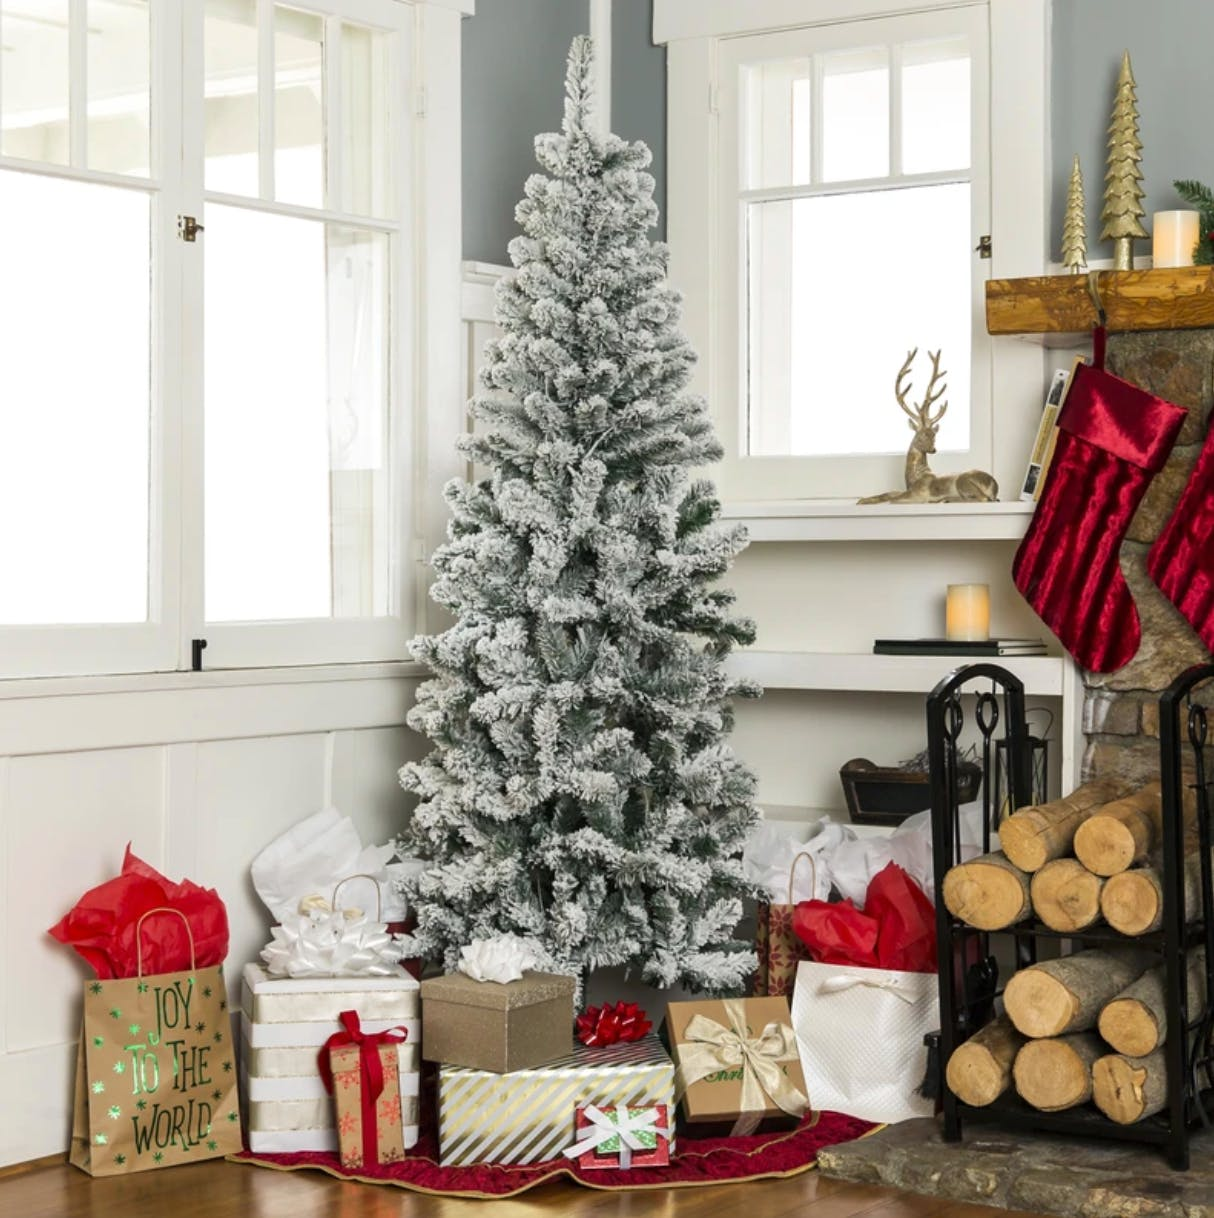 Snow Flocked Pencil Christmas Tree As Low As 40 The Krazy Coupon Lady